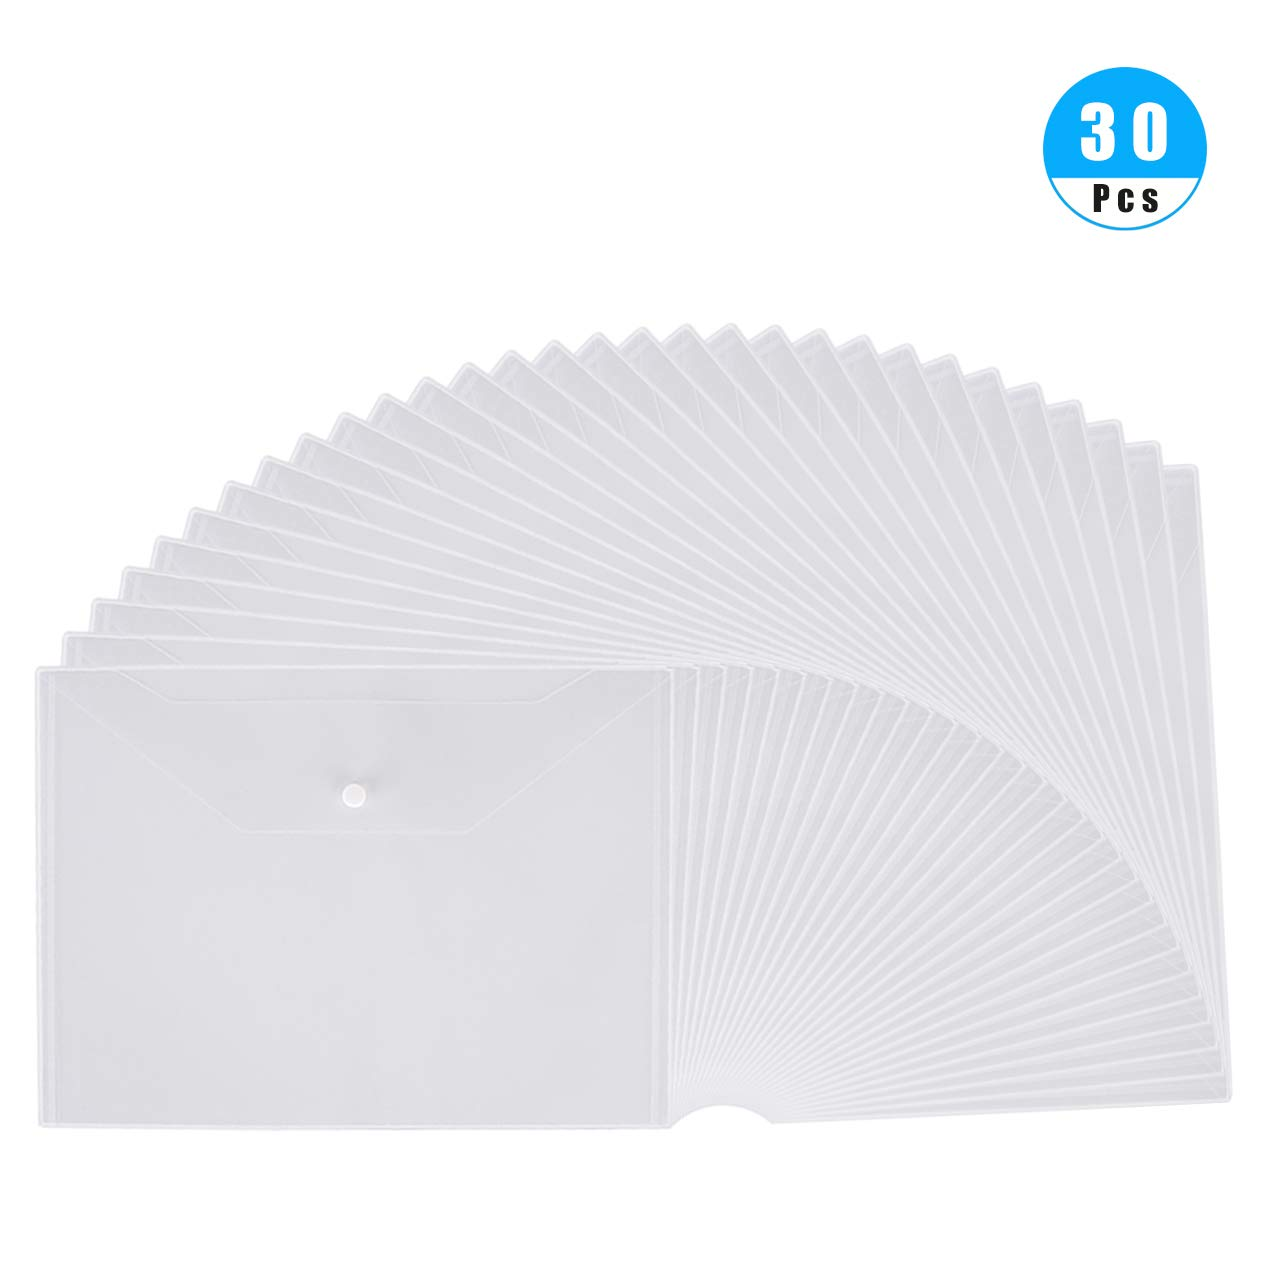 Venhua 30 Pcs Clear Plastic Waterproof Envelope Folder with Button Closure, Poly Envelopes Plastic Envelopes for School, Home, Work, Outdoor and Office Organization, A4 Size in Transparent Color by venhua